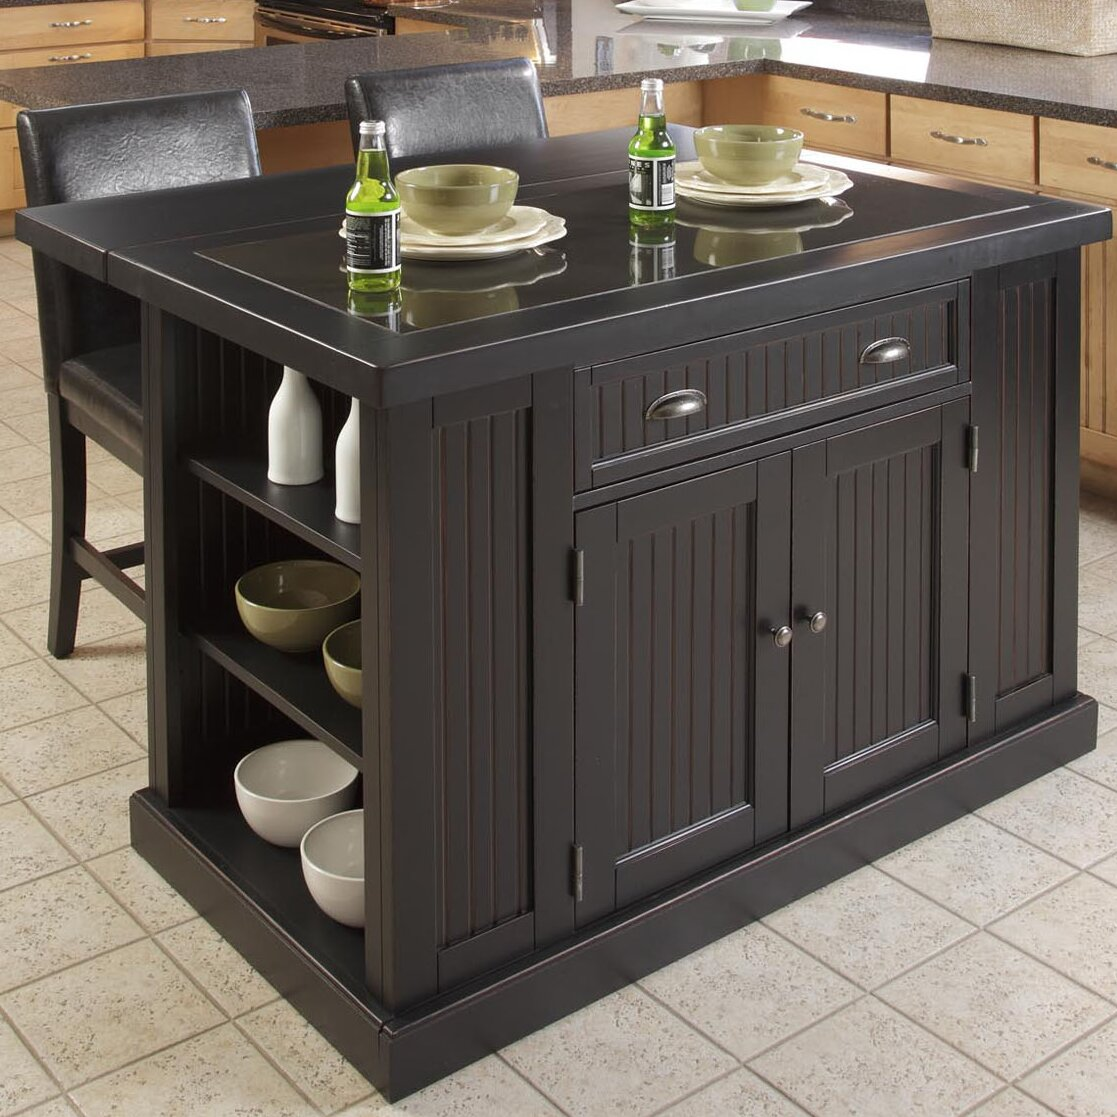 Breakwater bay gouldsboro 3 piece kitchen island set with for Best kitchen set